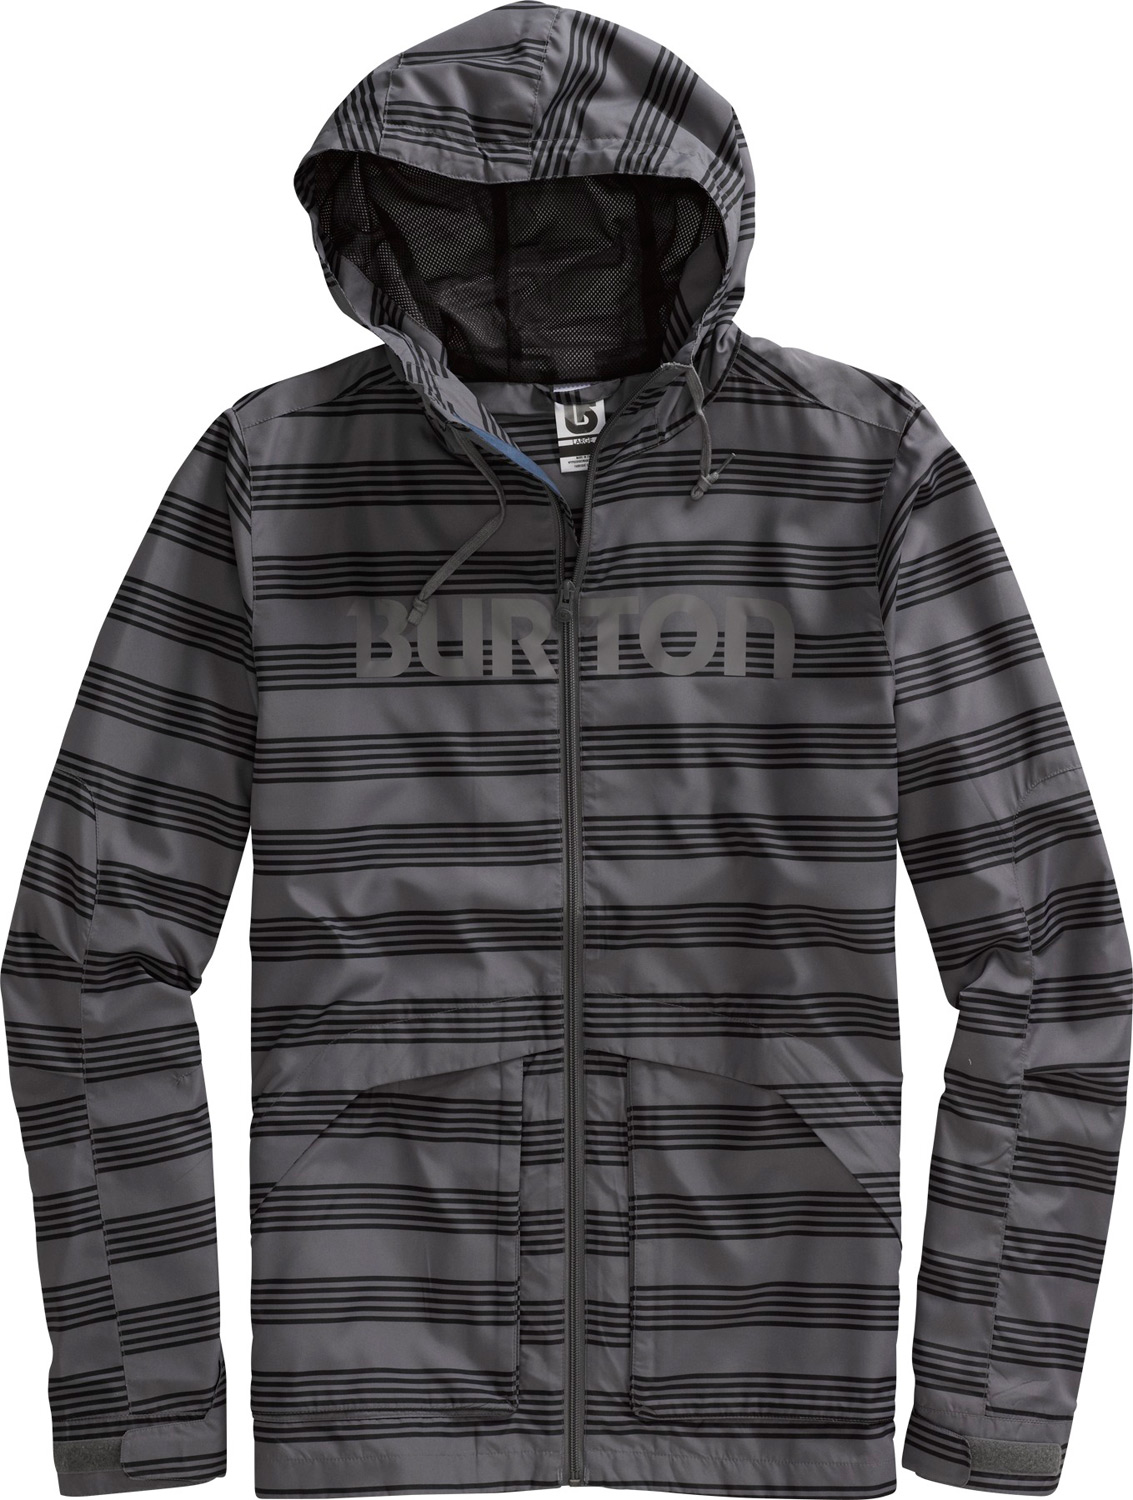 Snowboard Elemental resistance - wind or rain, a dry decision for when the weather is undecided.Key Features of the Burton Dover Jacket: 100% Micro Polyester AirTech® Fabric with DRYRIDE Mist-Defy Street Fit Microcell Mesh Lining Screen Printed Logo at Chest - $69.95